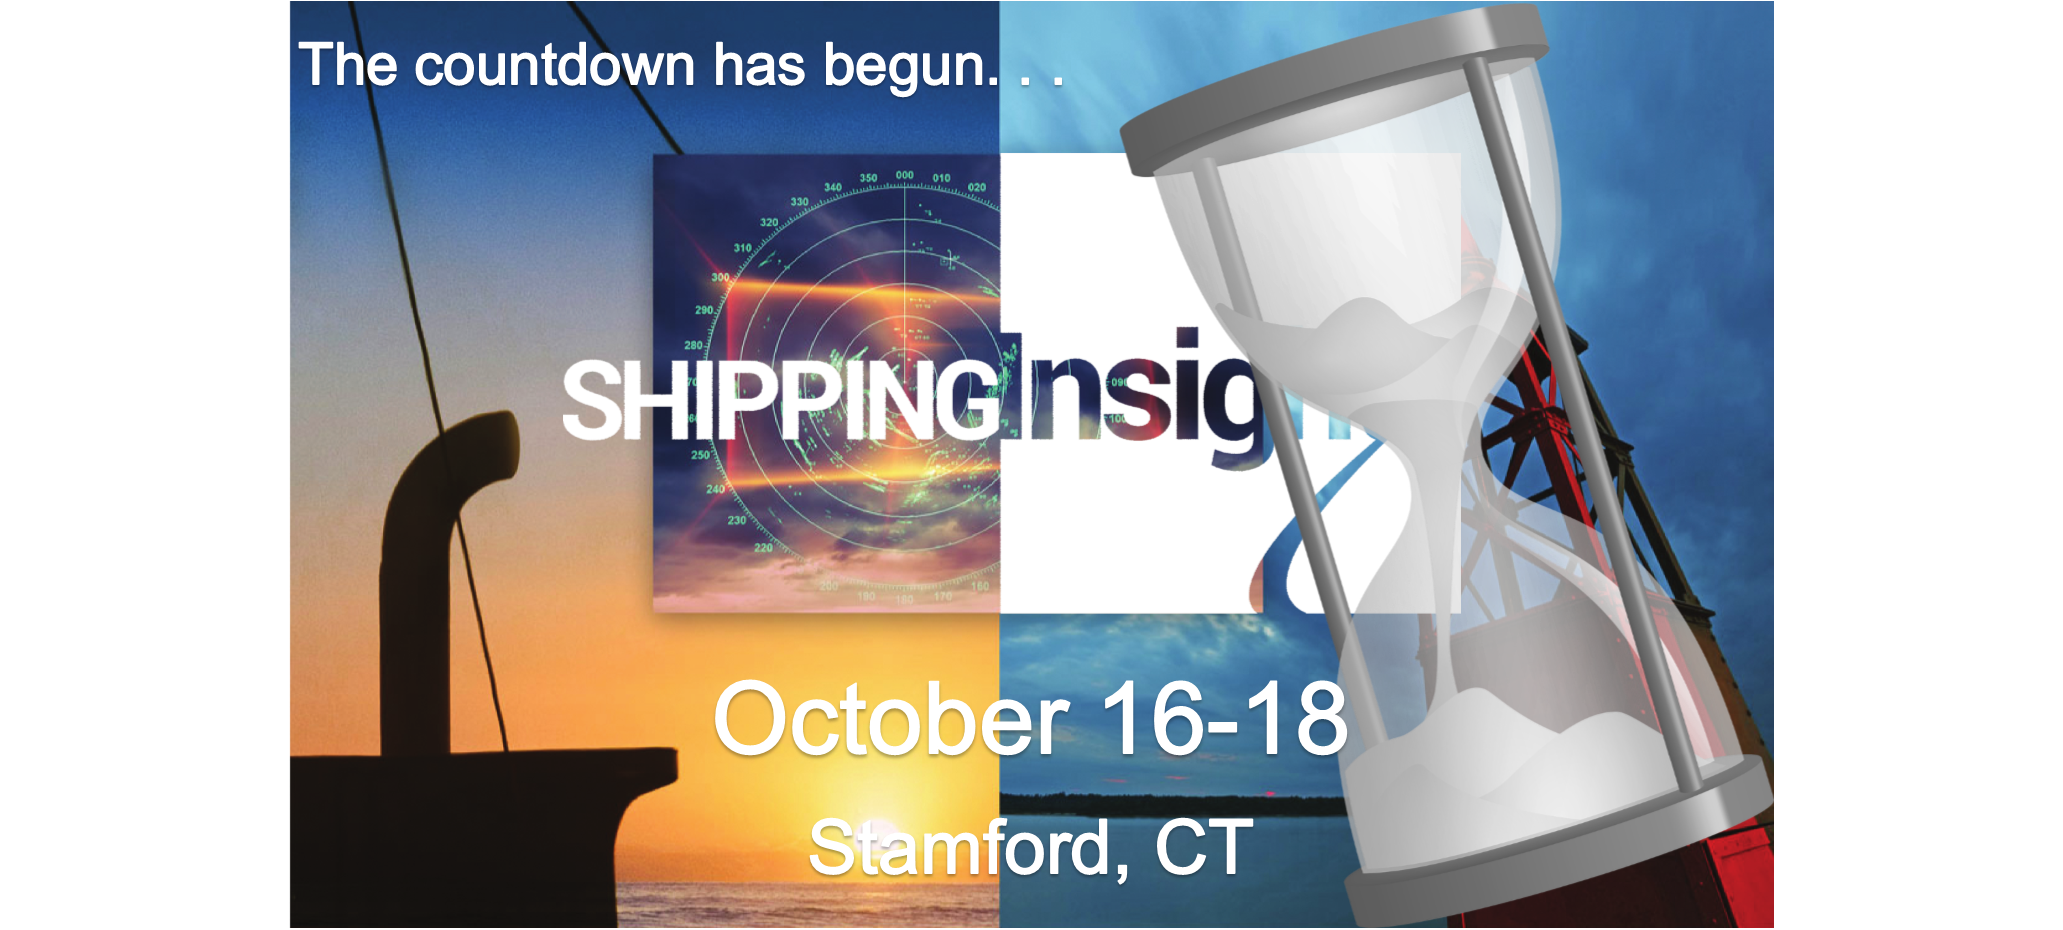 Countdown To SHIPPINGInsight 2018: North America's Premier Shipping Technology Event Convenes In Stamford October 16-18